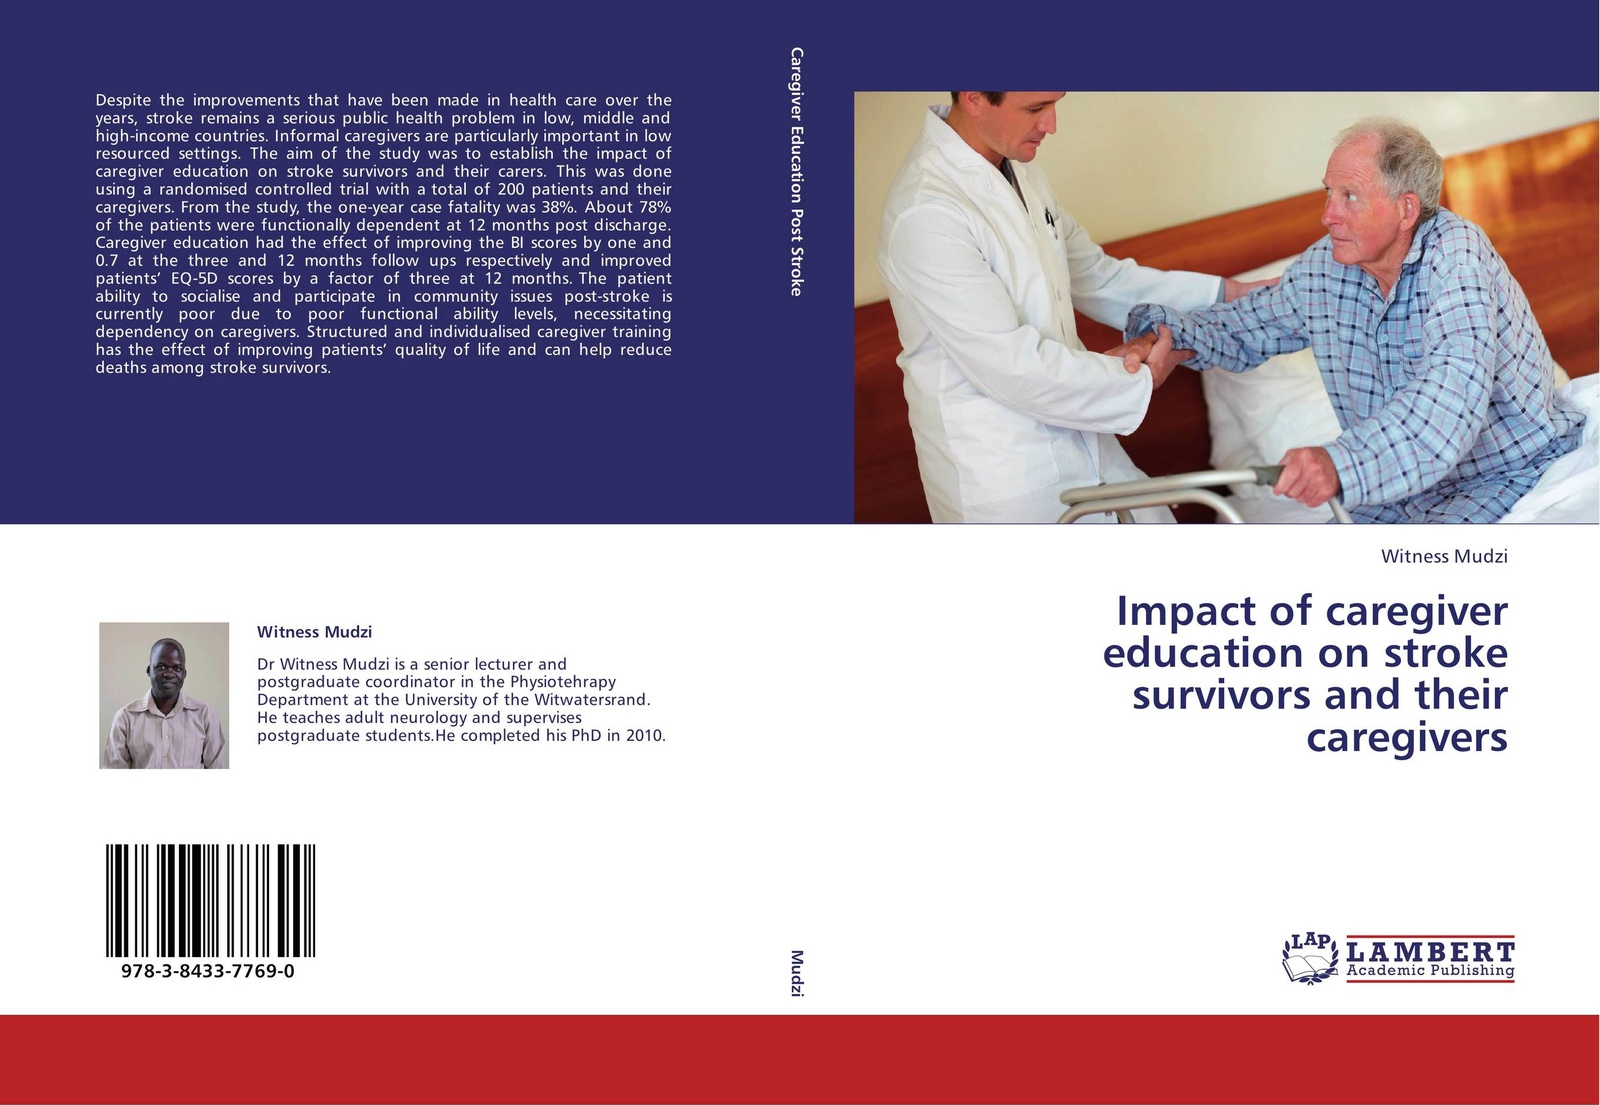 Witness Mudzi Impact of caregiver education on stroke survivors and their caregivers gait and balance performance in stroke survivors